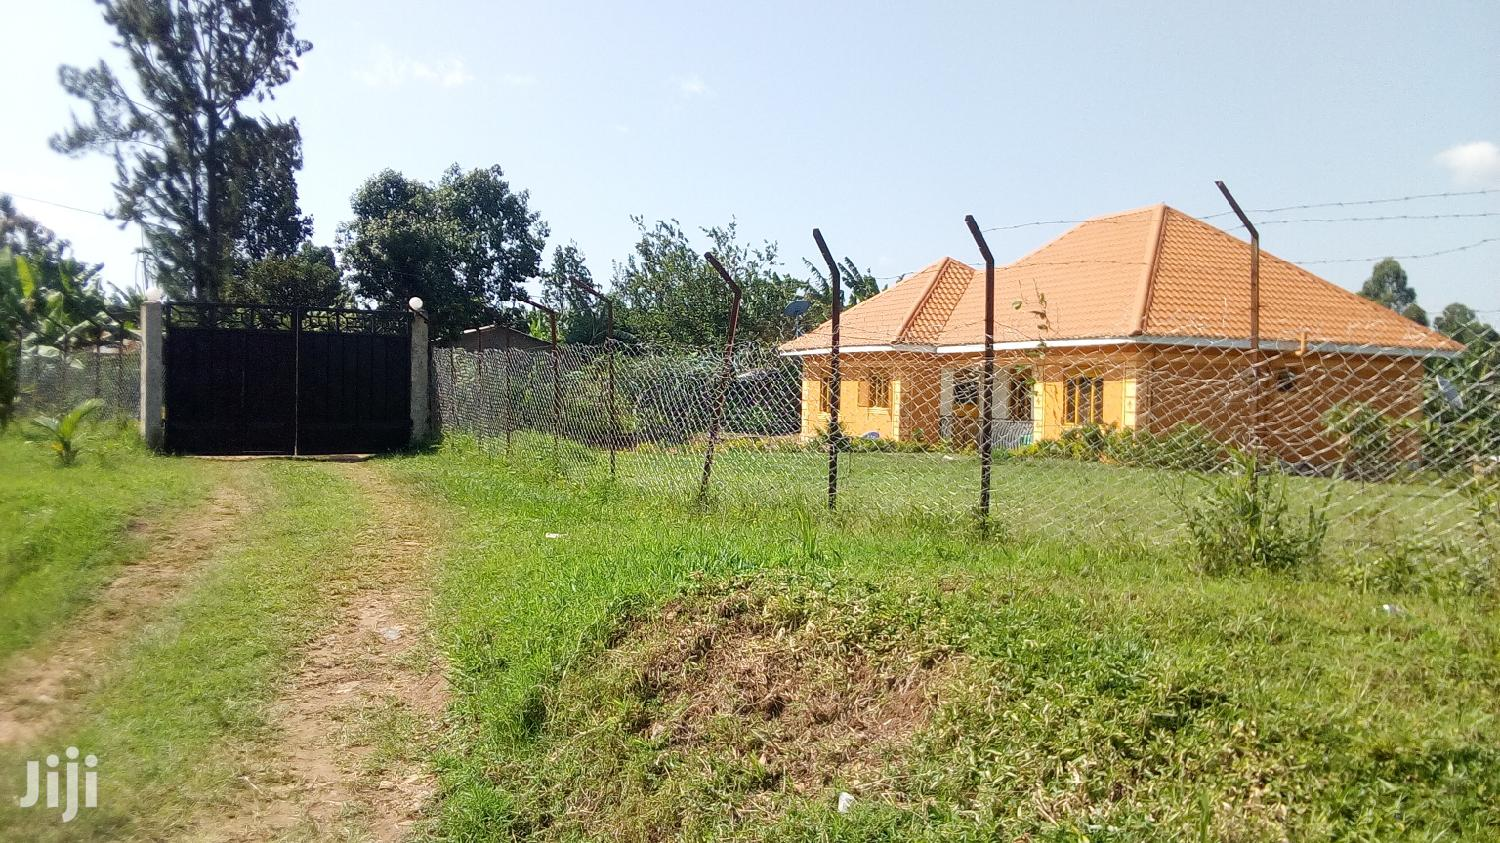 3bedroom Residential House on Sale | Houses & Apartments For Sale for sale in Kabalore, Western Region, Uganda